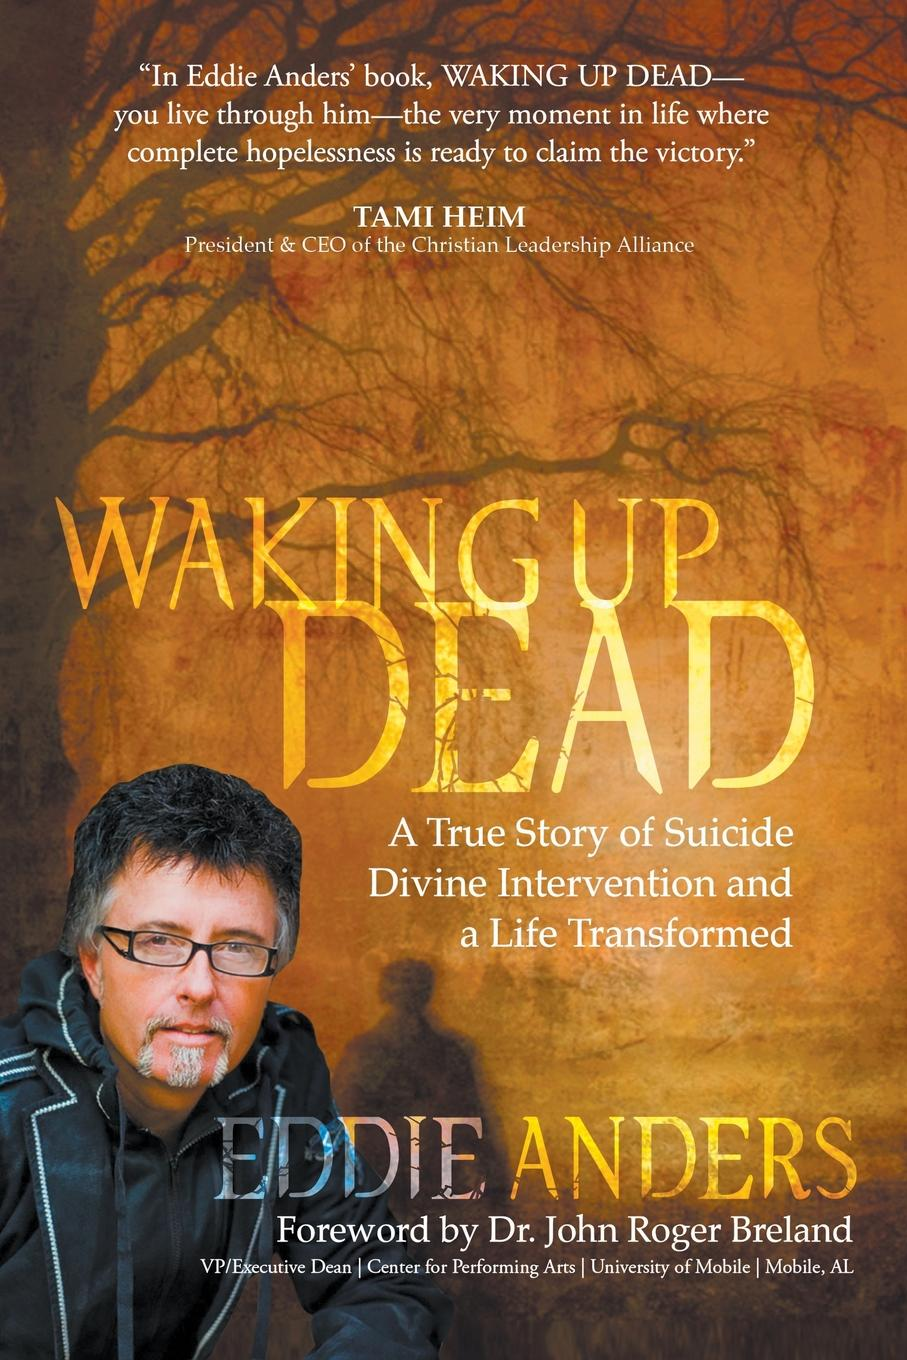 Eddie Anders Waking Up Dead. A True Story of Suicide, Divine Intervention and a Life Transformed be transformed